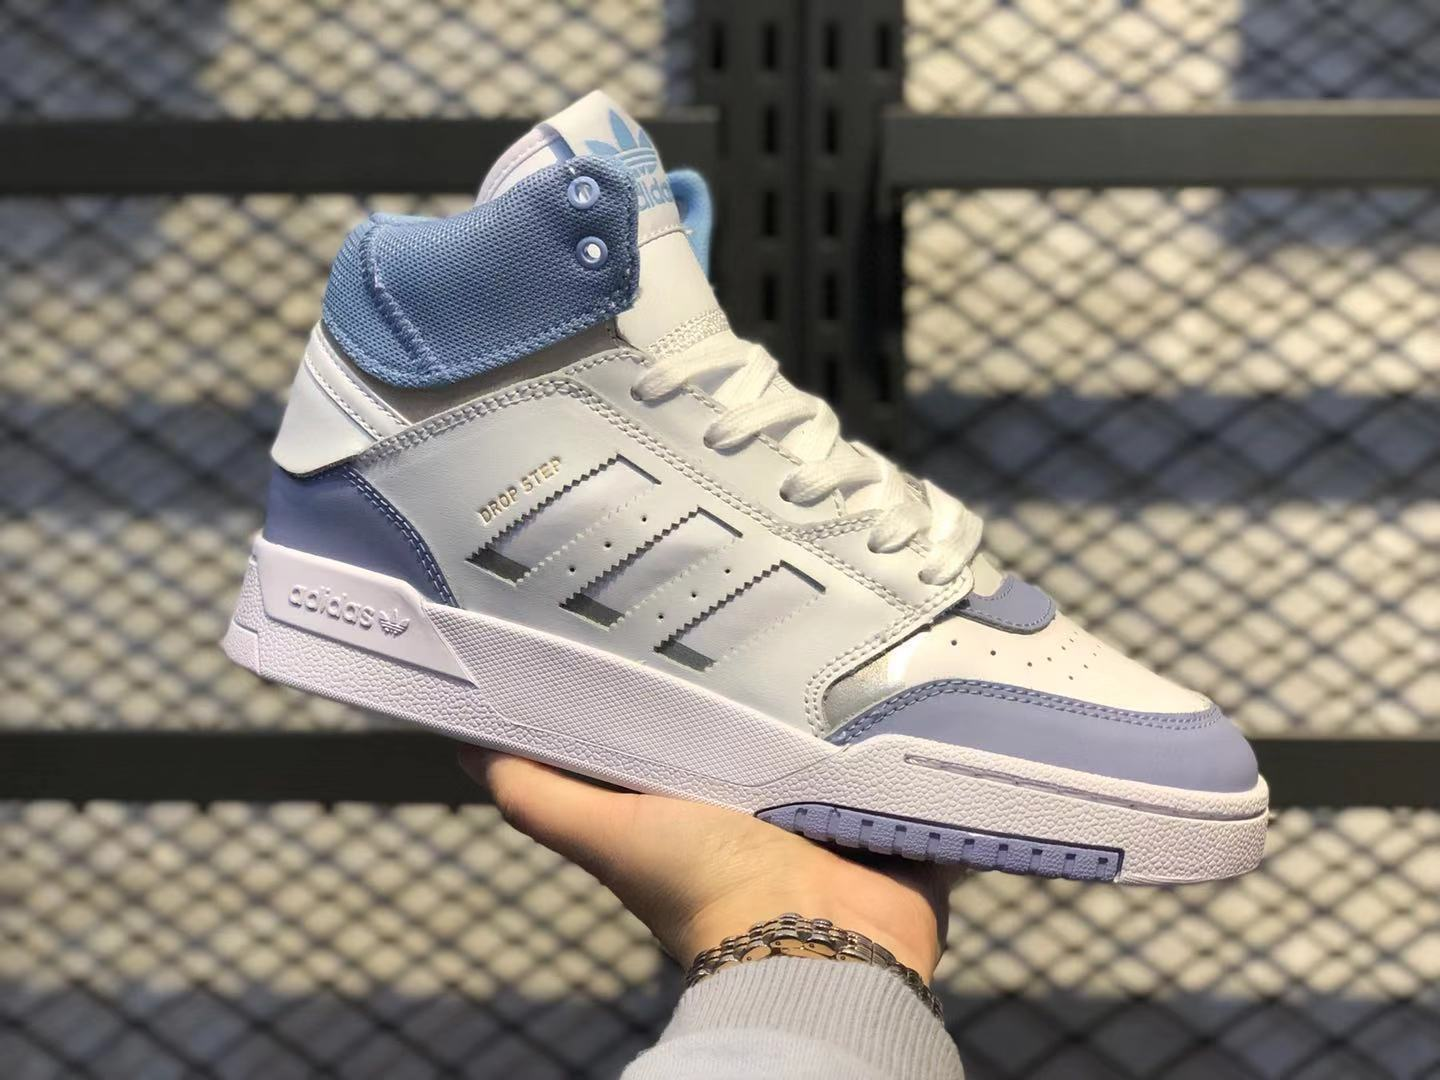 Adidas Originals Drop Step White/Blue-Metallic Silver Sneakers For Sale